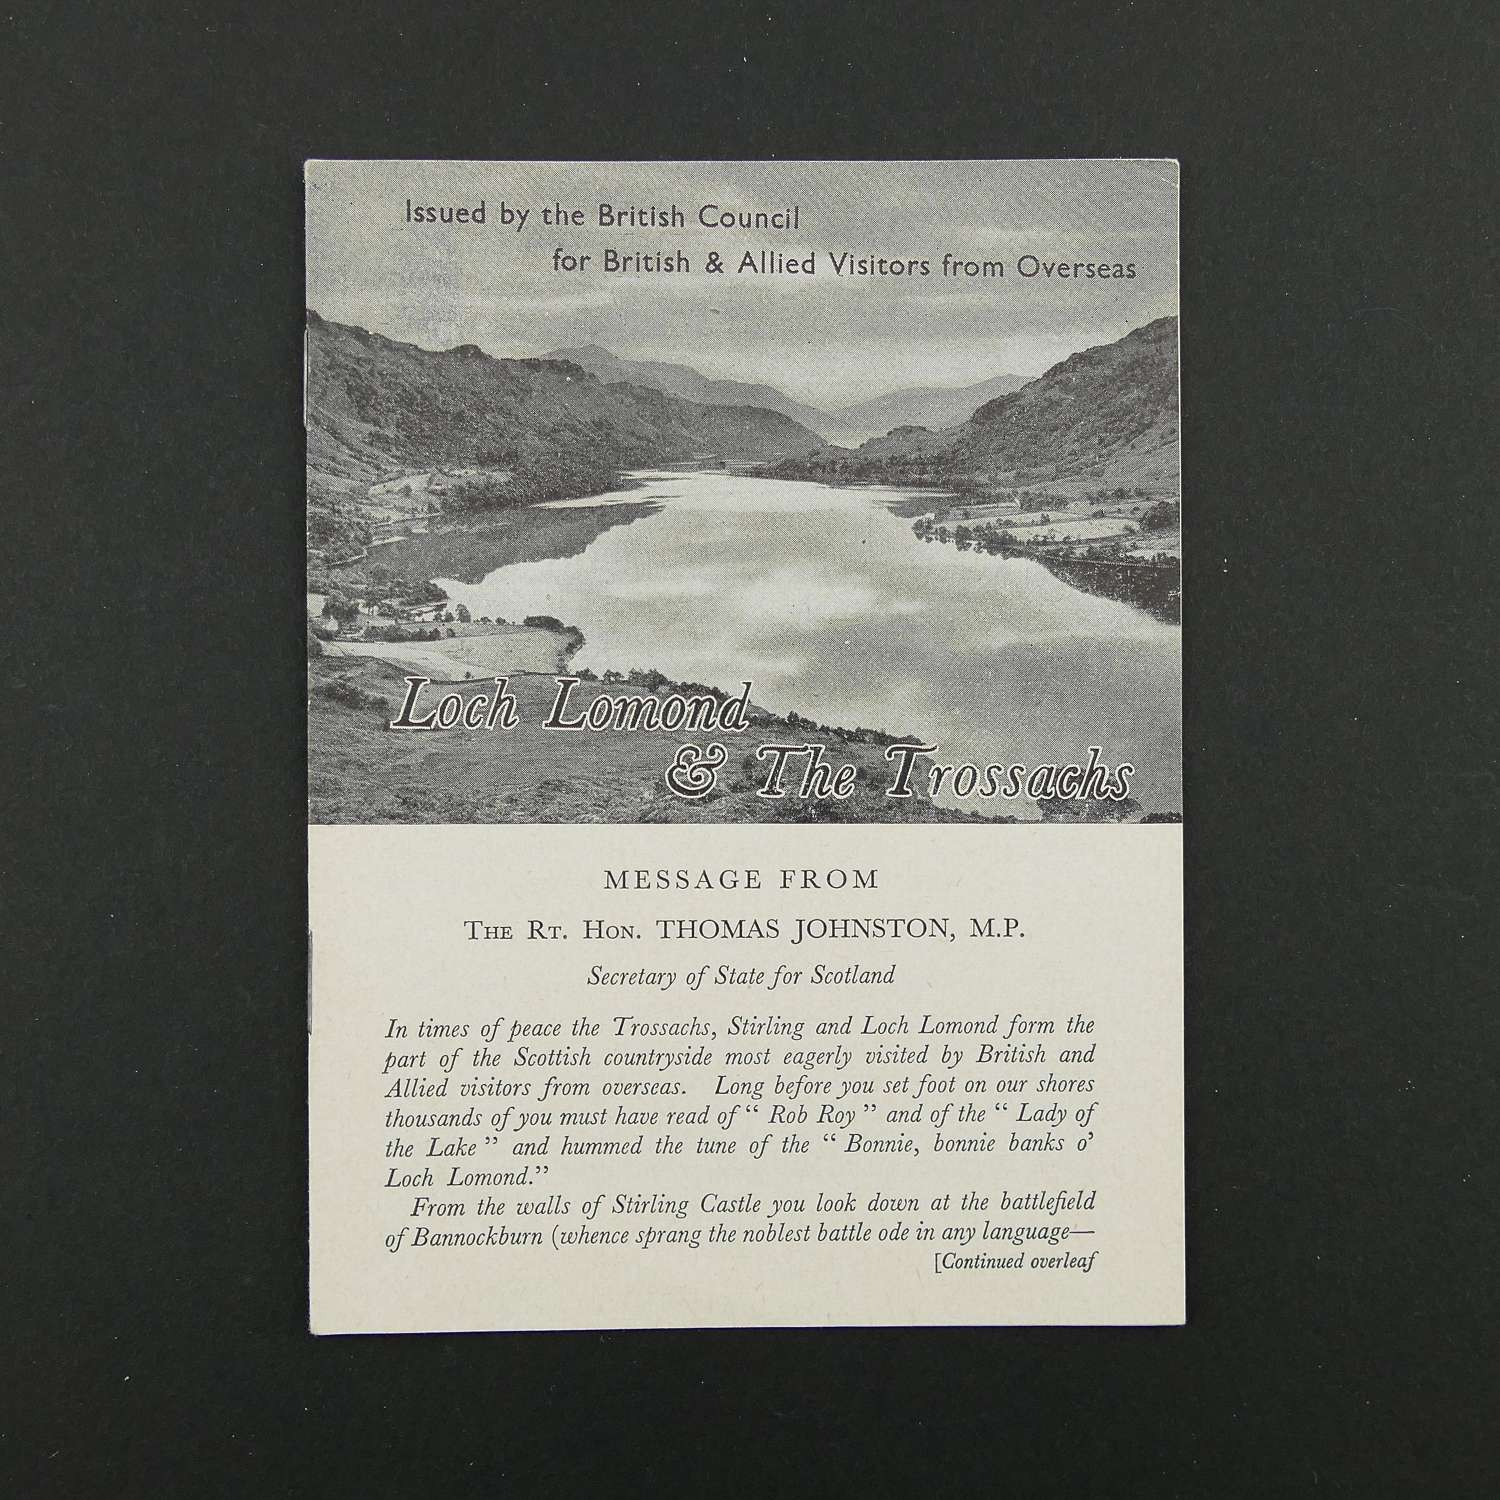 Guide to Loch Lomond & The Trossachs for WW2 visitors